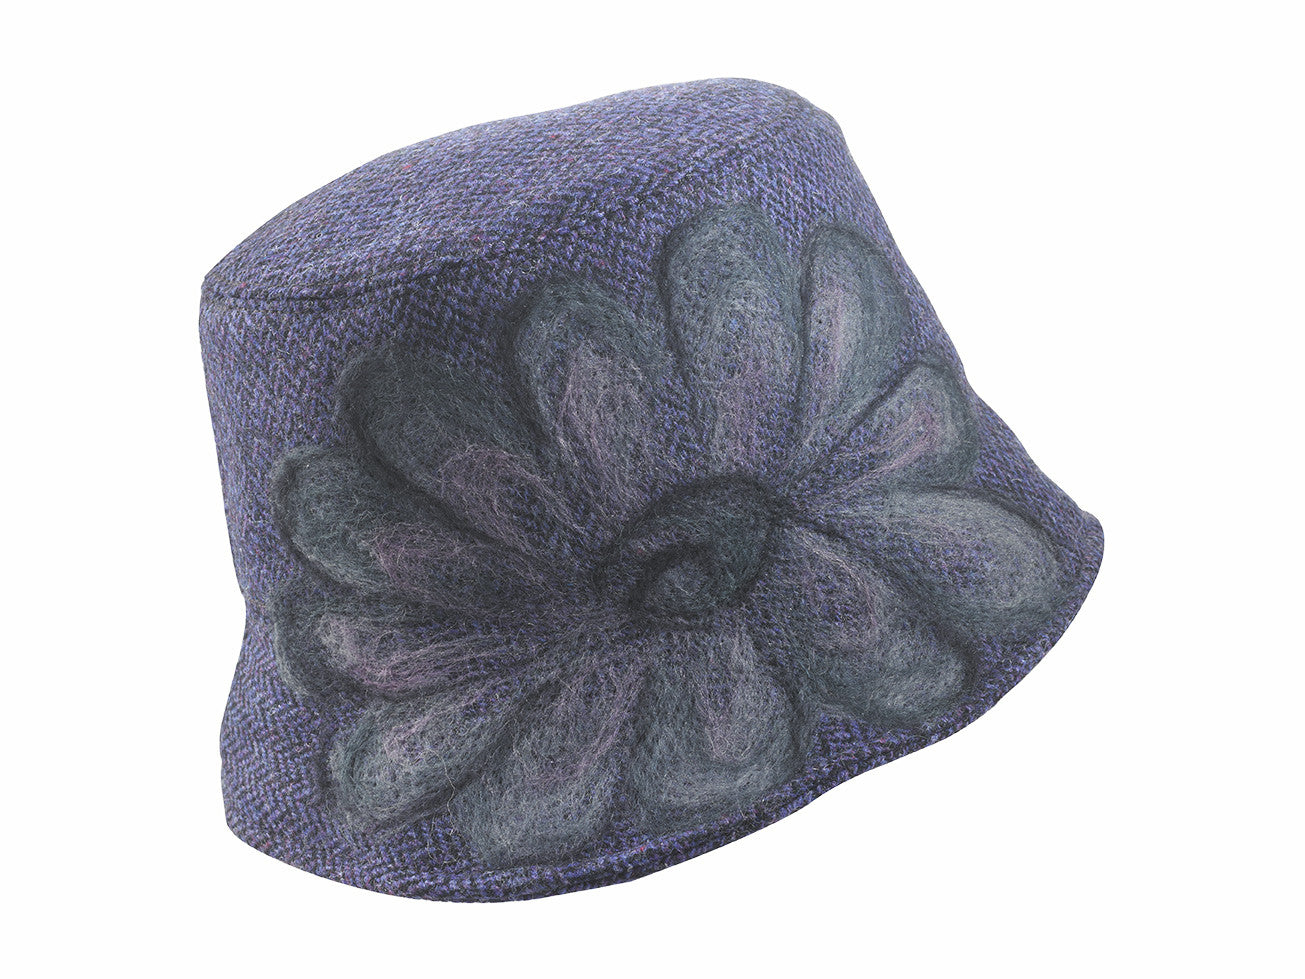 Jill - Woman s Fashionable Shetland Wool Hat -Save  20 - Stefeno Hats 4dc3ec0779a